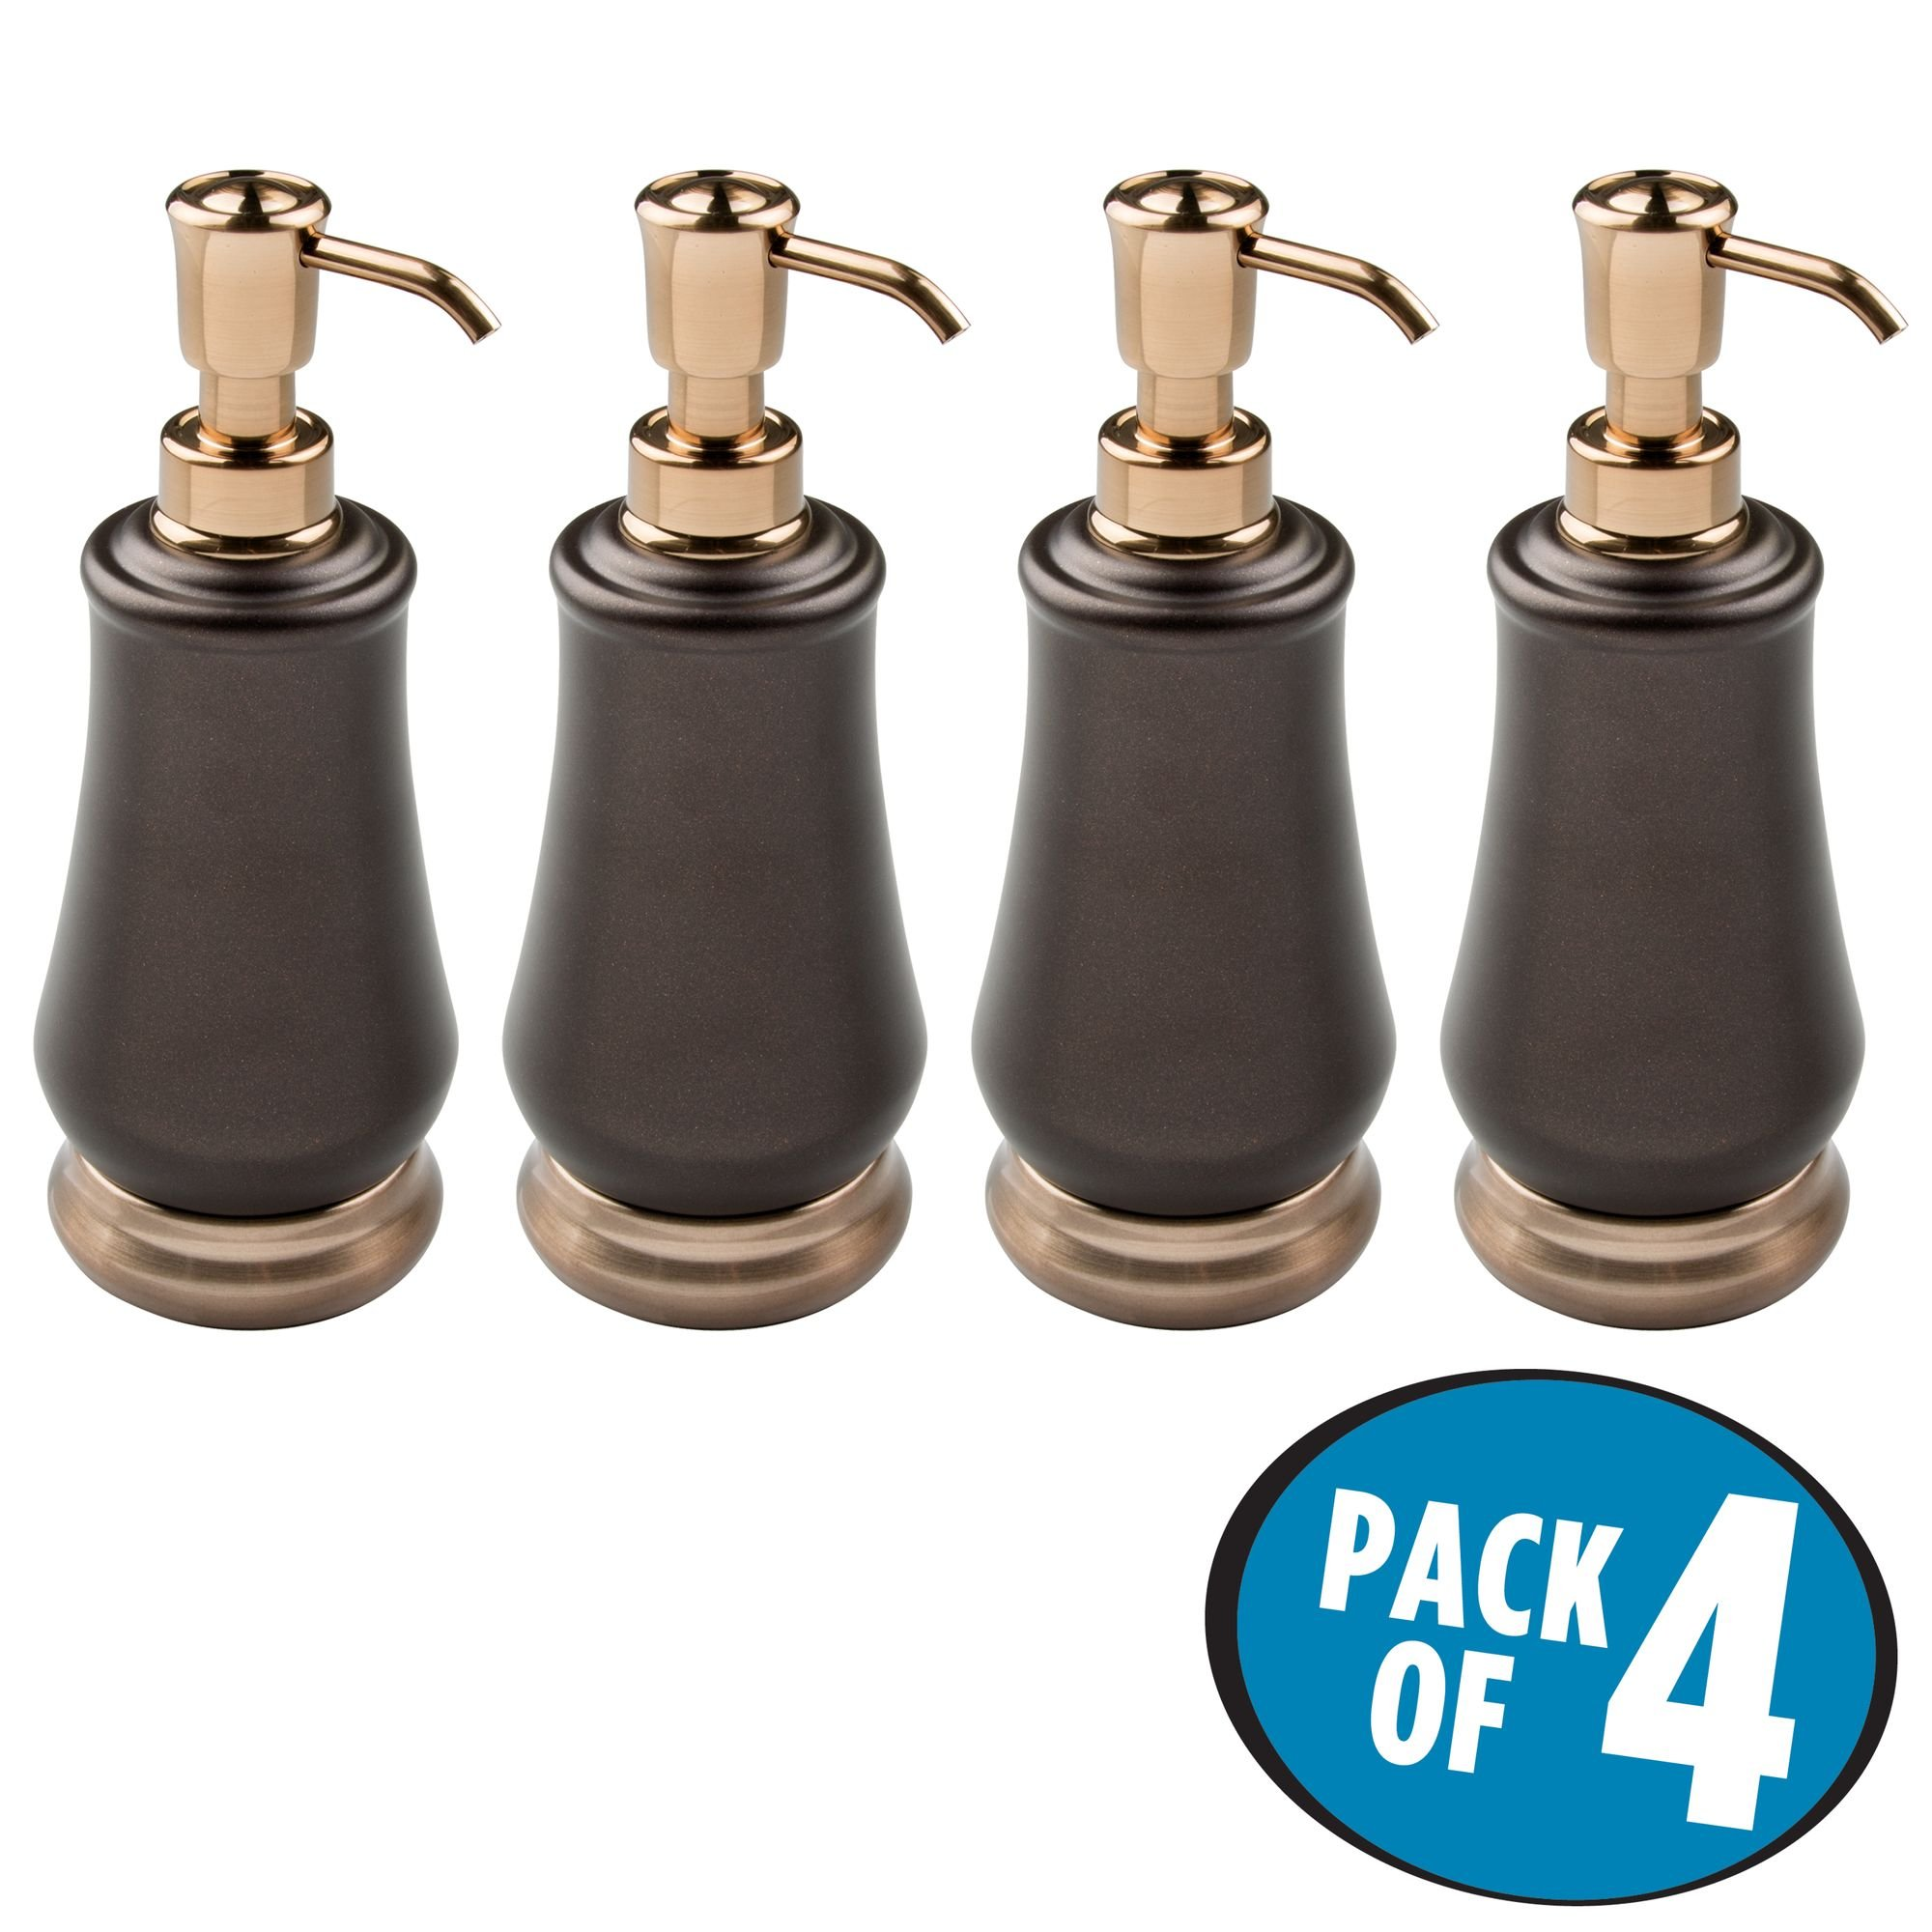 mDesign Liquid Soap Dispenser Pump Bottle for Kitchen Sink, Bathroom Vanity Countertops: Also for Hand Lotion & Essential Oils - Pack of 4, Steel Body in Pearl Bronze/Champagne Pump and Base by mDesign